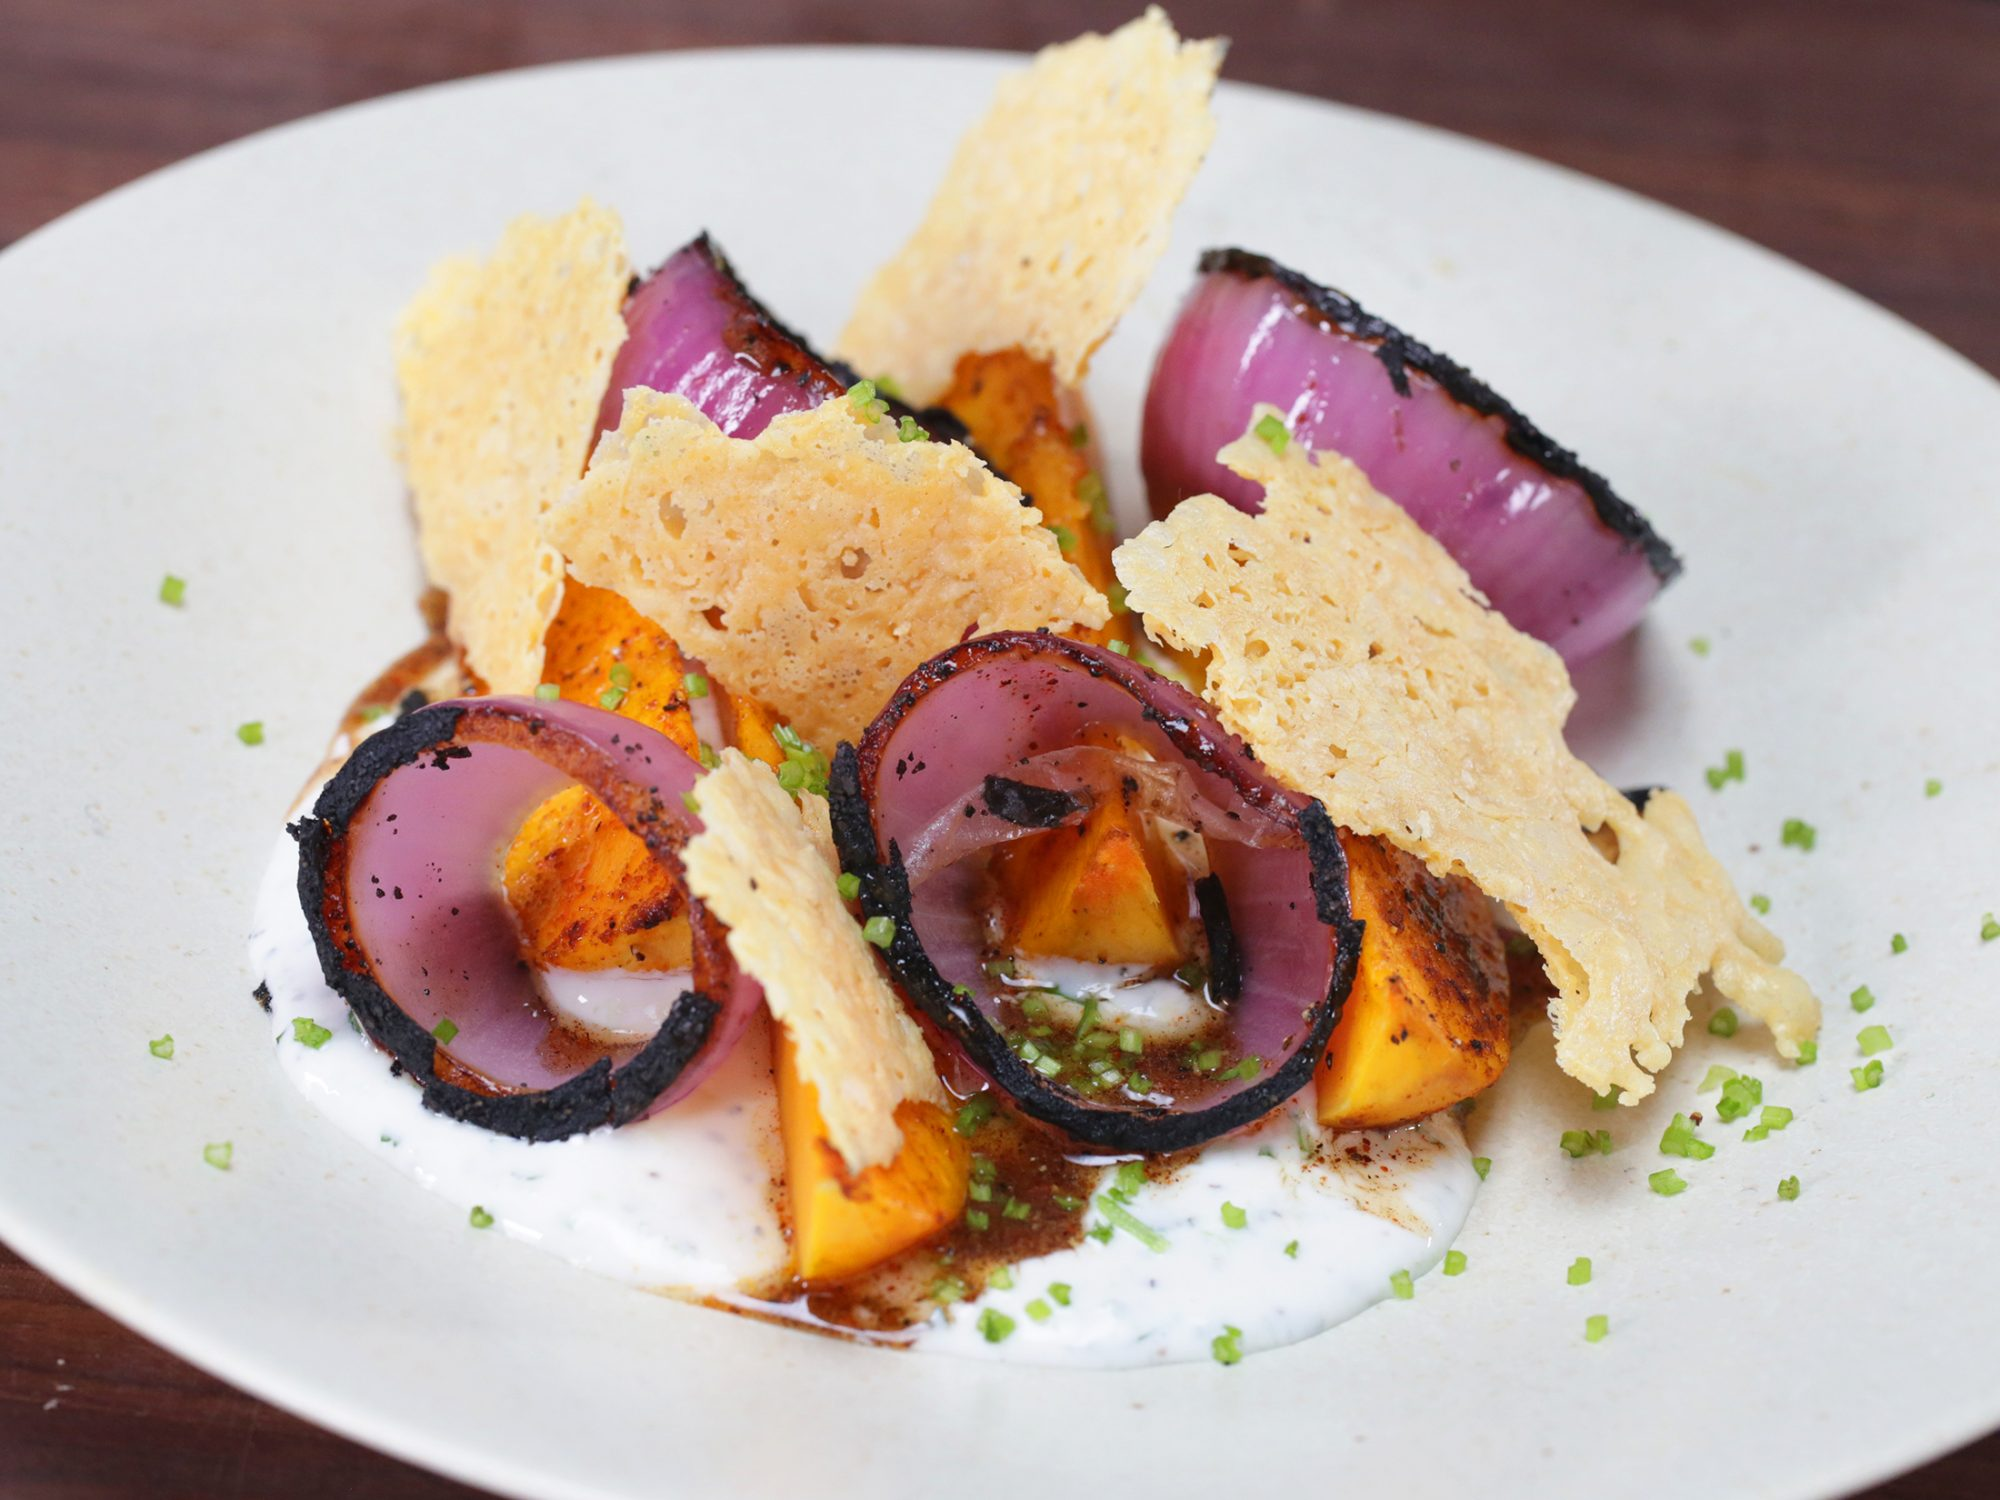 Roasted Winter Squash with Chipotle Honey, Tillamook Cheddar Crisp, Lime Yogurt, and Charred Onion